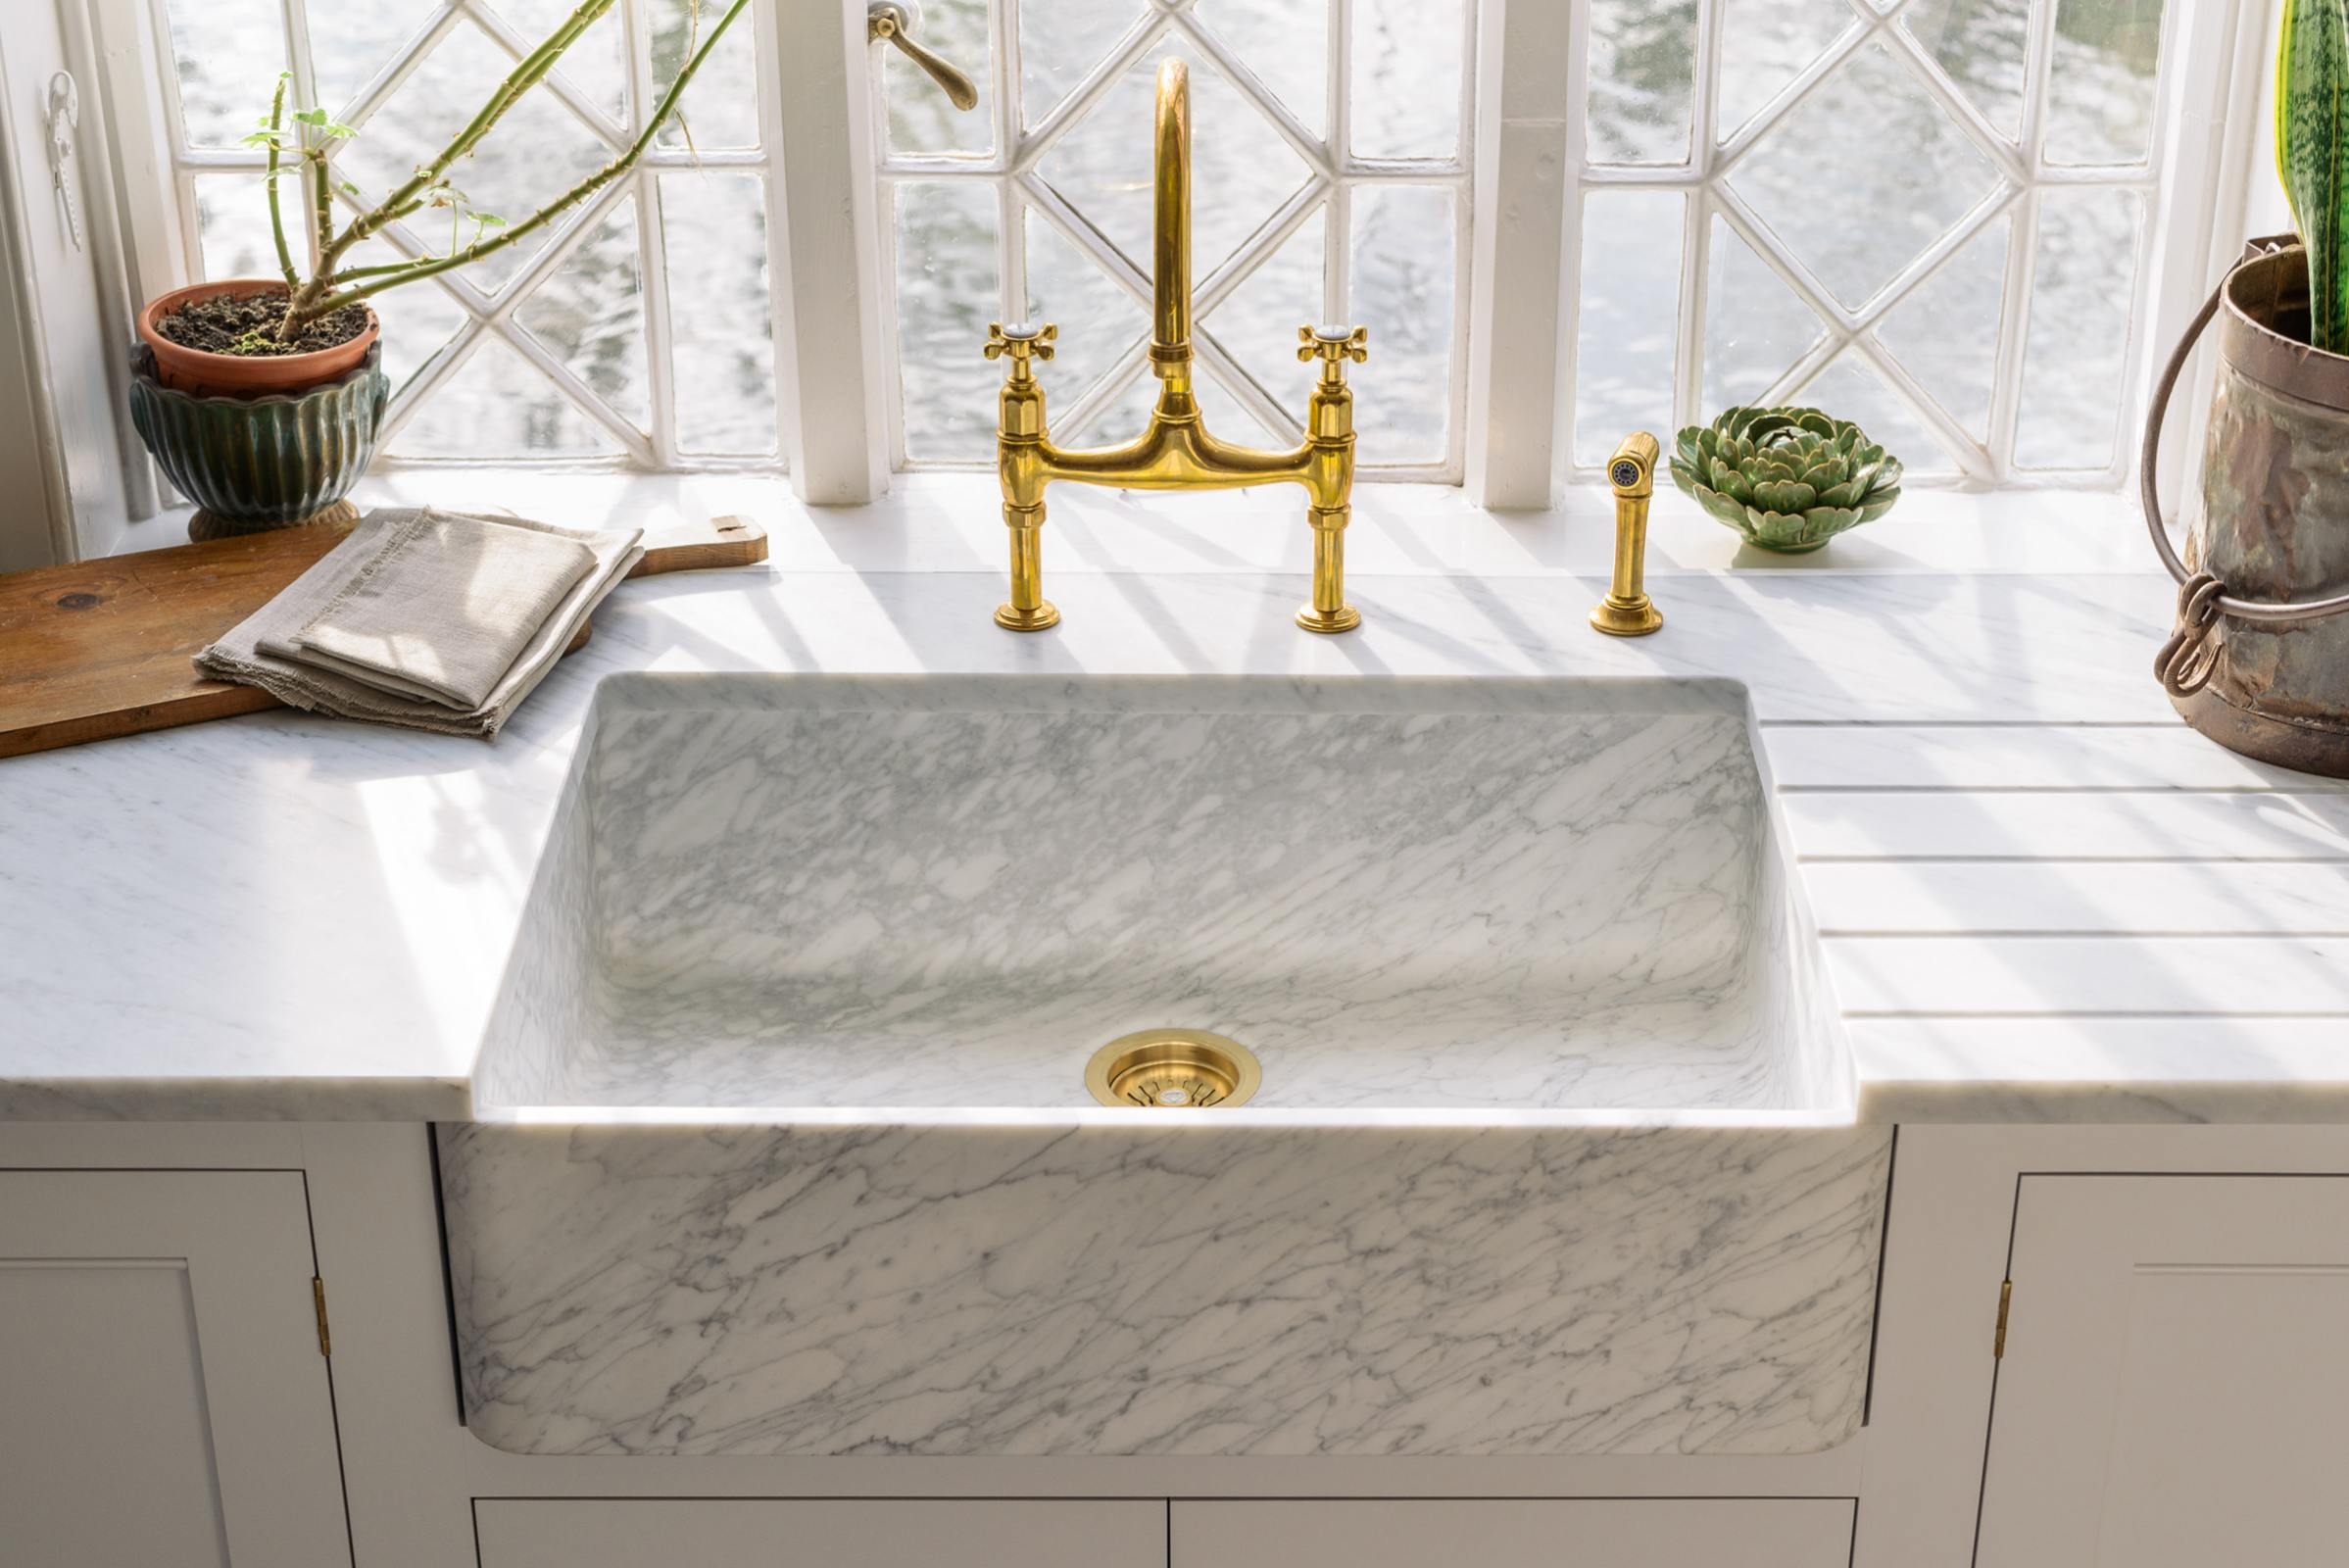 Milano Penthouse 31 1/2'' Single Marble Sink photo 4